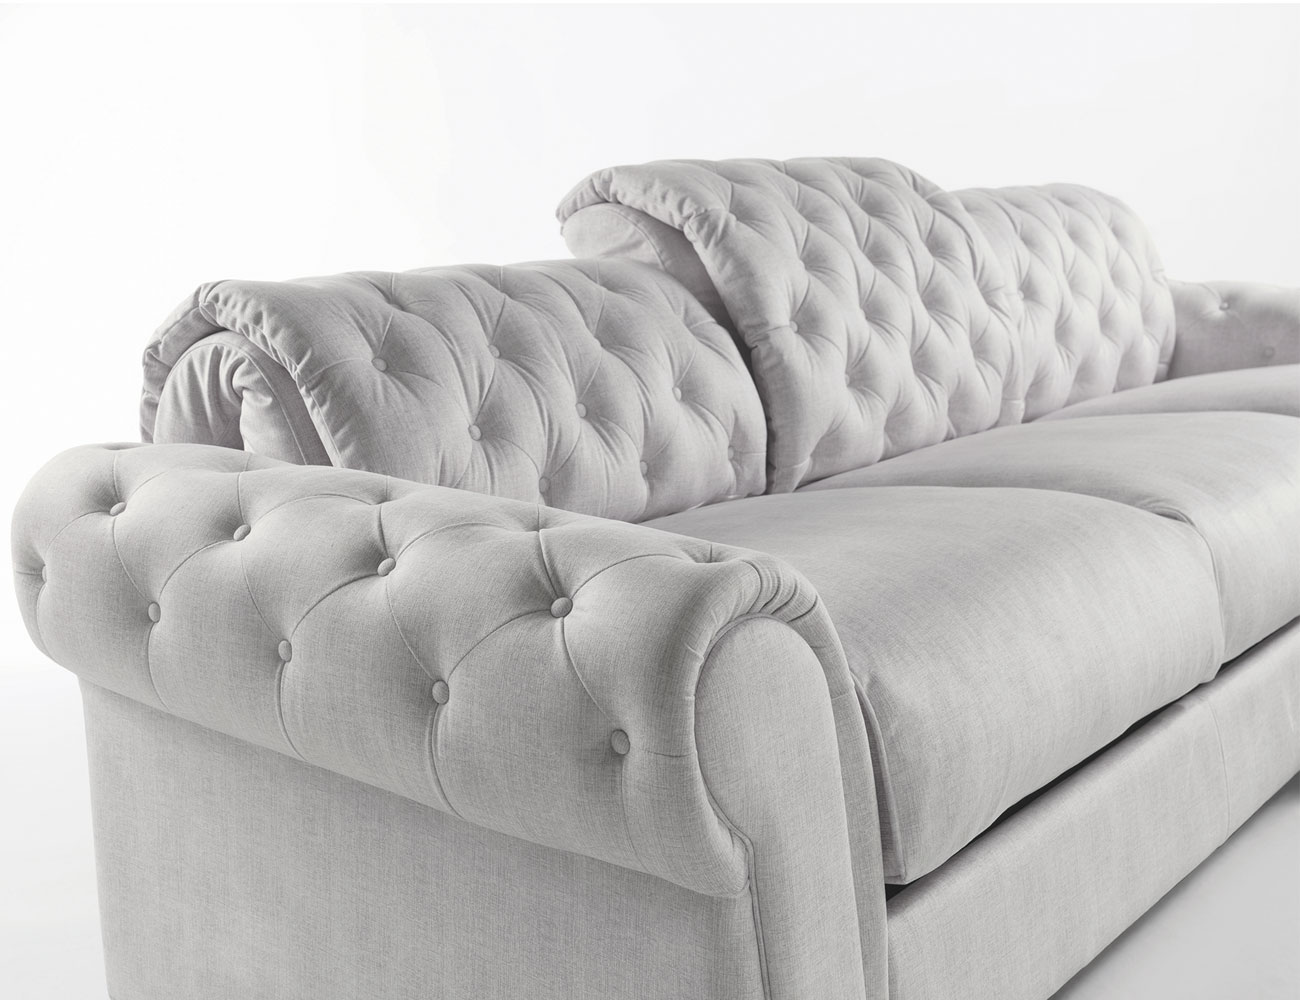 Sofa chaiselongue gran lujo decorativo capitone blanco tela 18